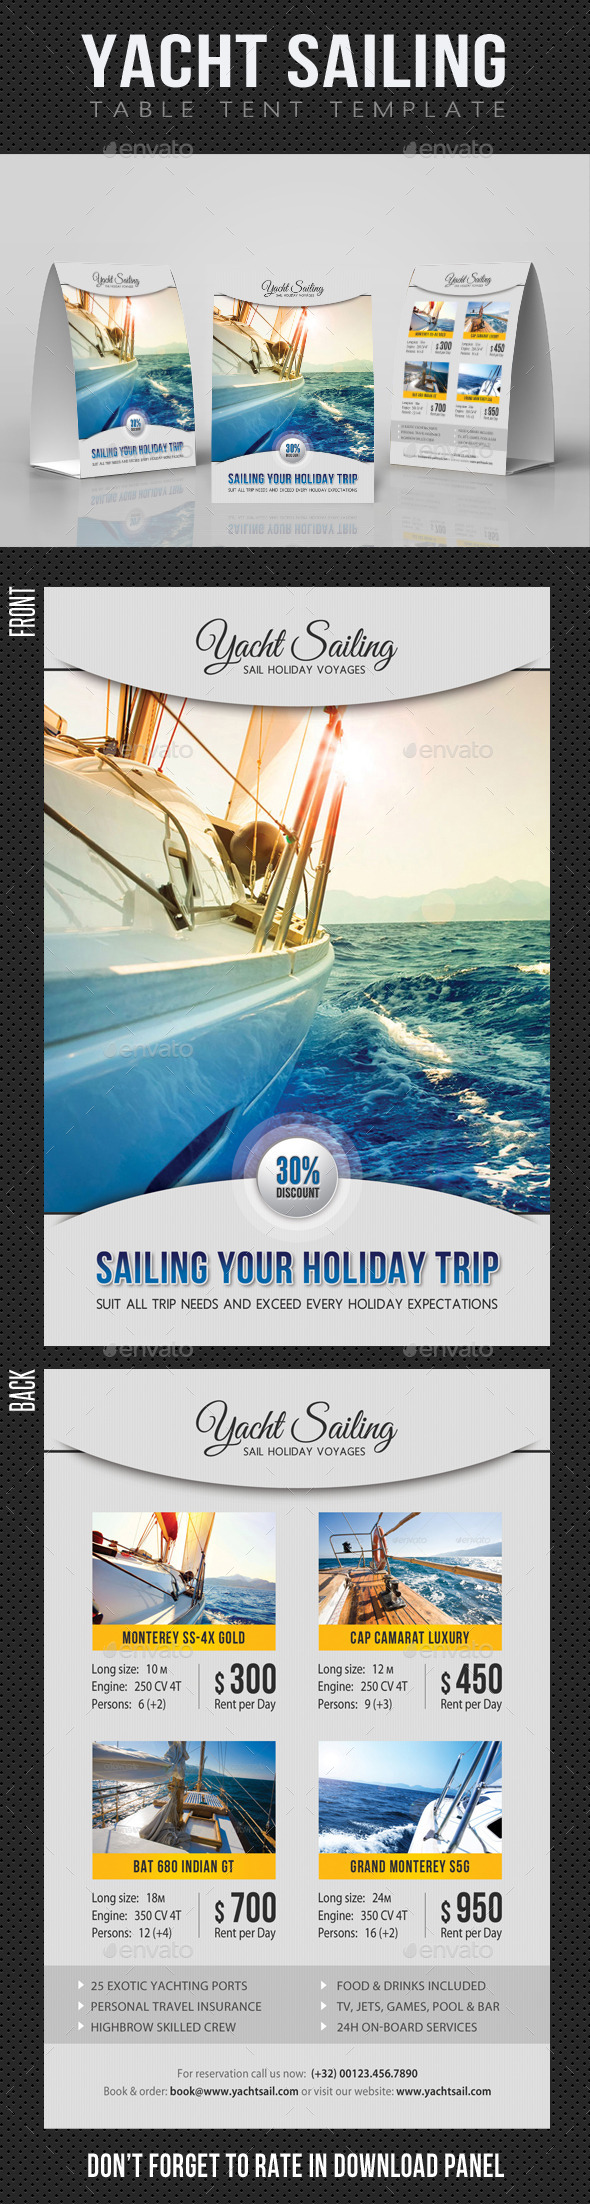 Sailing Yacht Travel Table Tent V01 - Miscellaneous Print Templates